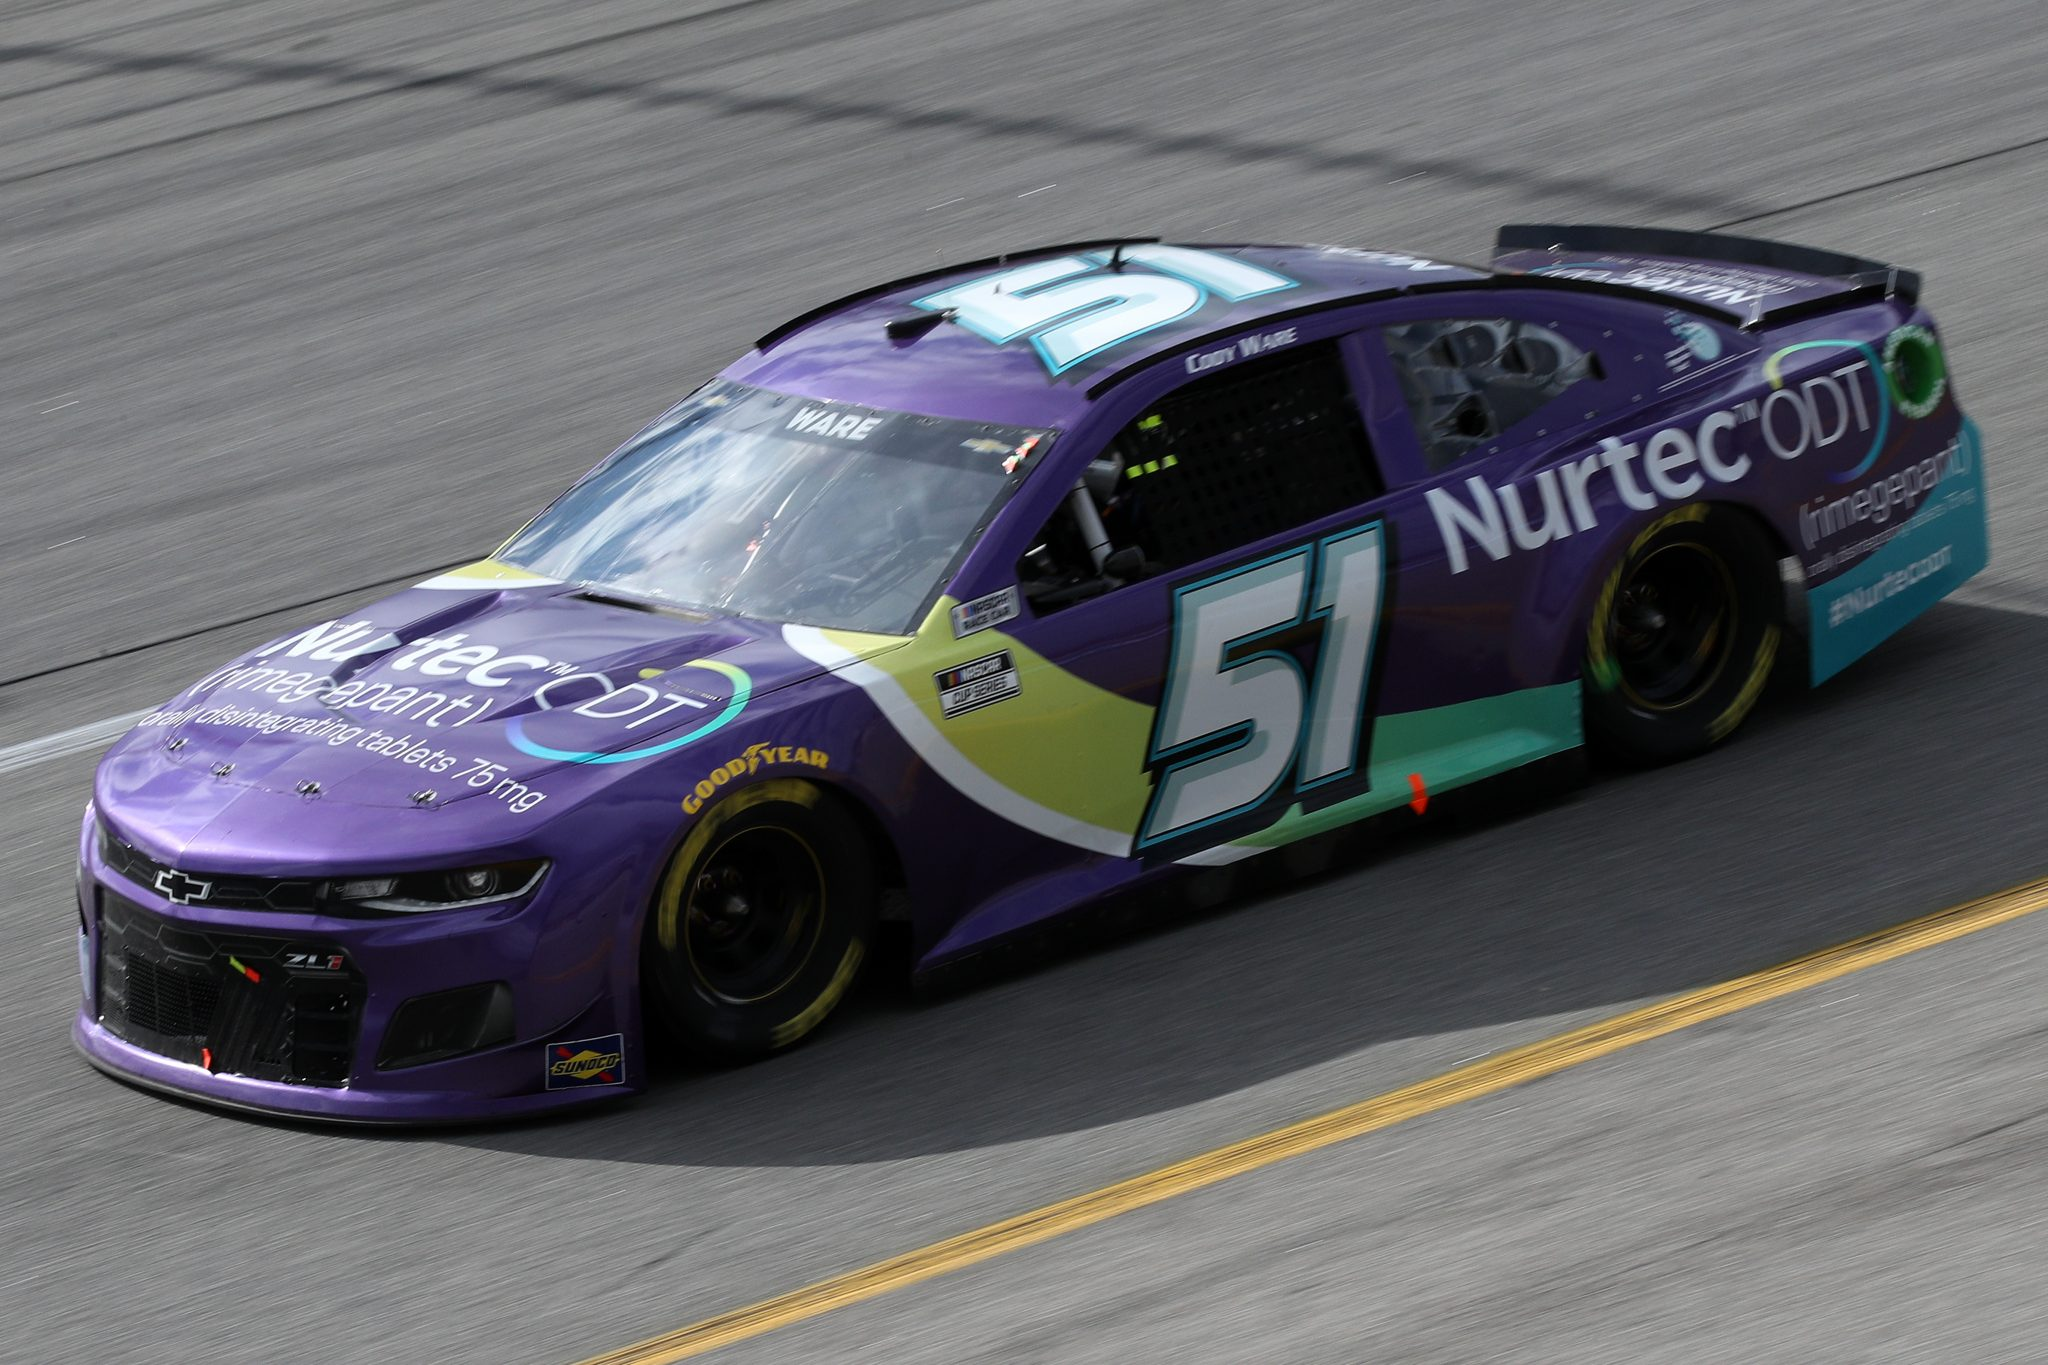 RICHMOND, VIRGINIA - APRIL 18: Cody Ware, driver of the #51 Nurtec ODT Chevrolet, drives during the NASCAR Cup Series Toyota Owners 400 at Richmond Raceway on April 18, 2021 in Richmond, Virginia. (Photo by Sean Gardner/Getty Images) | Getty Images